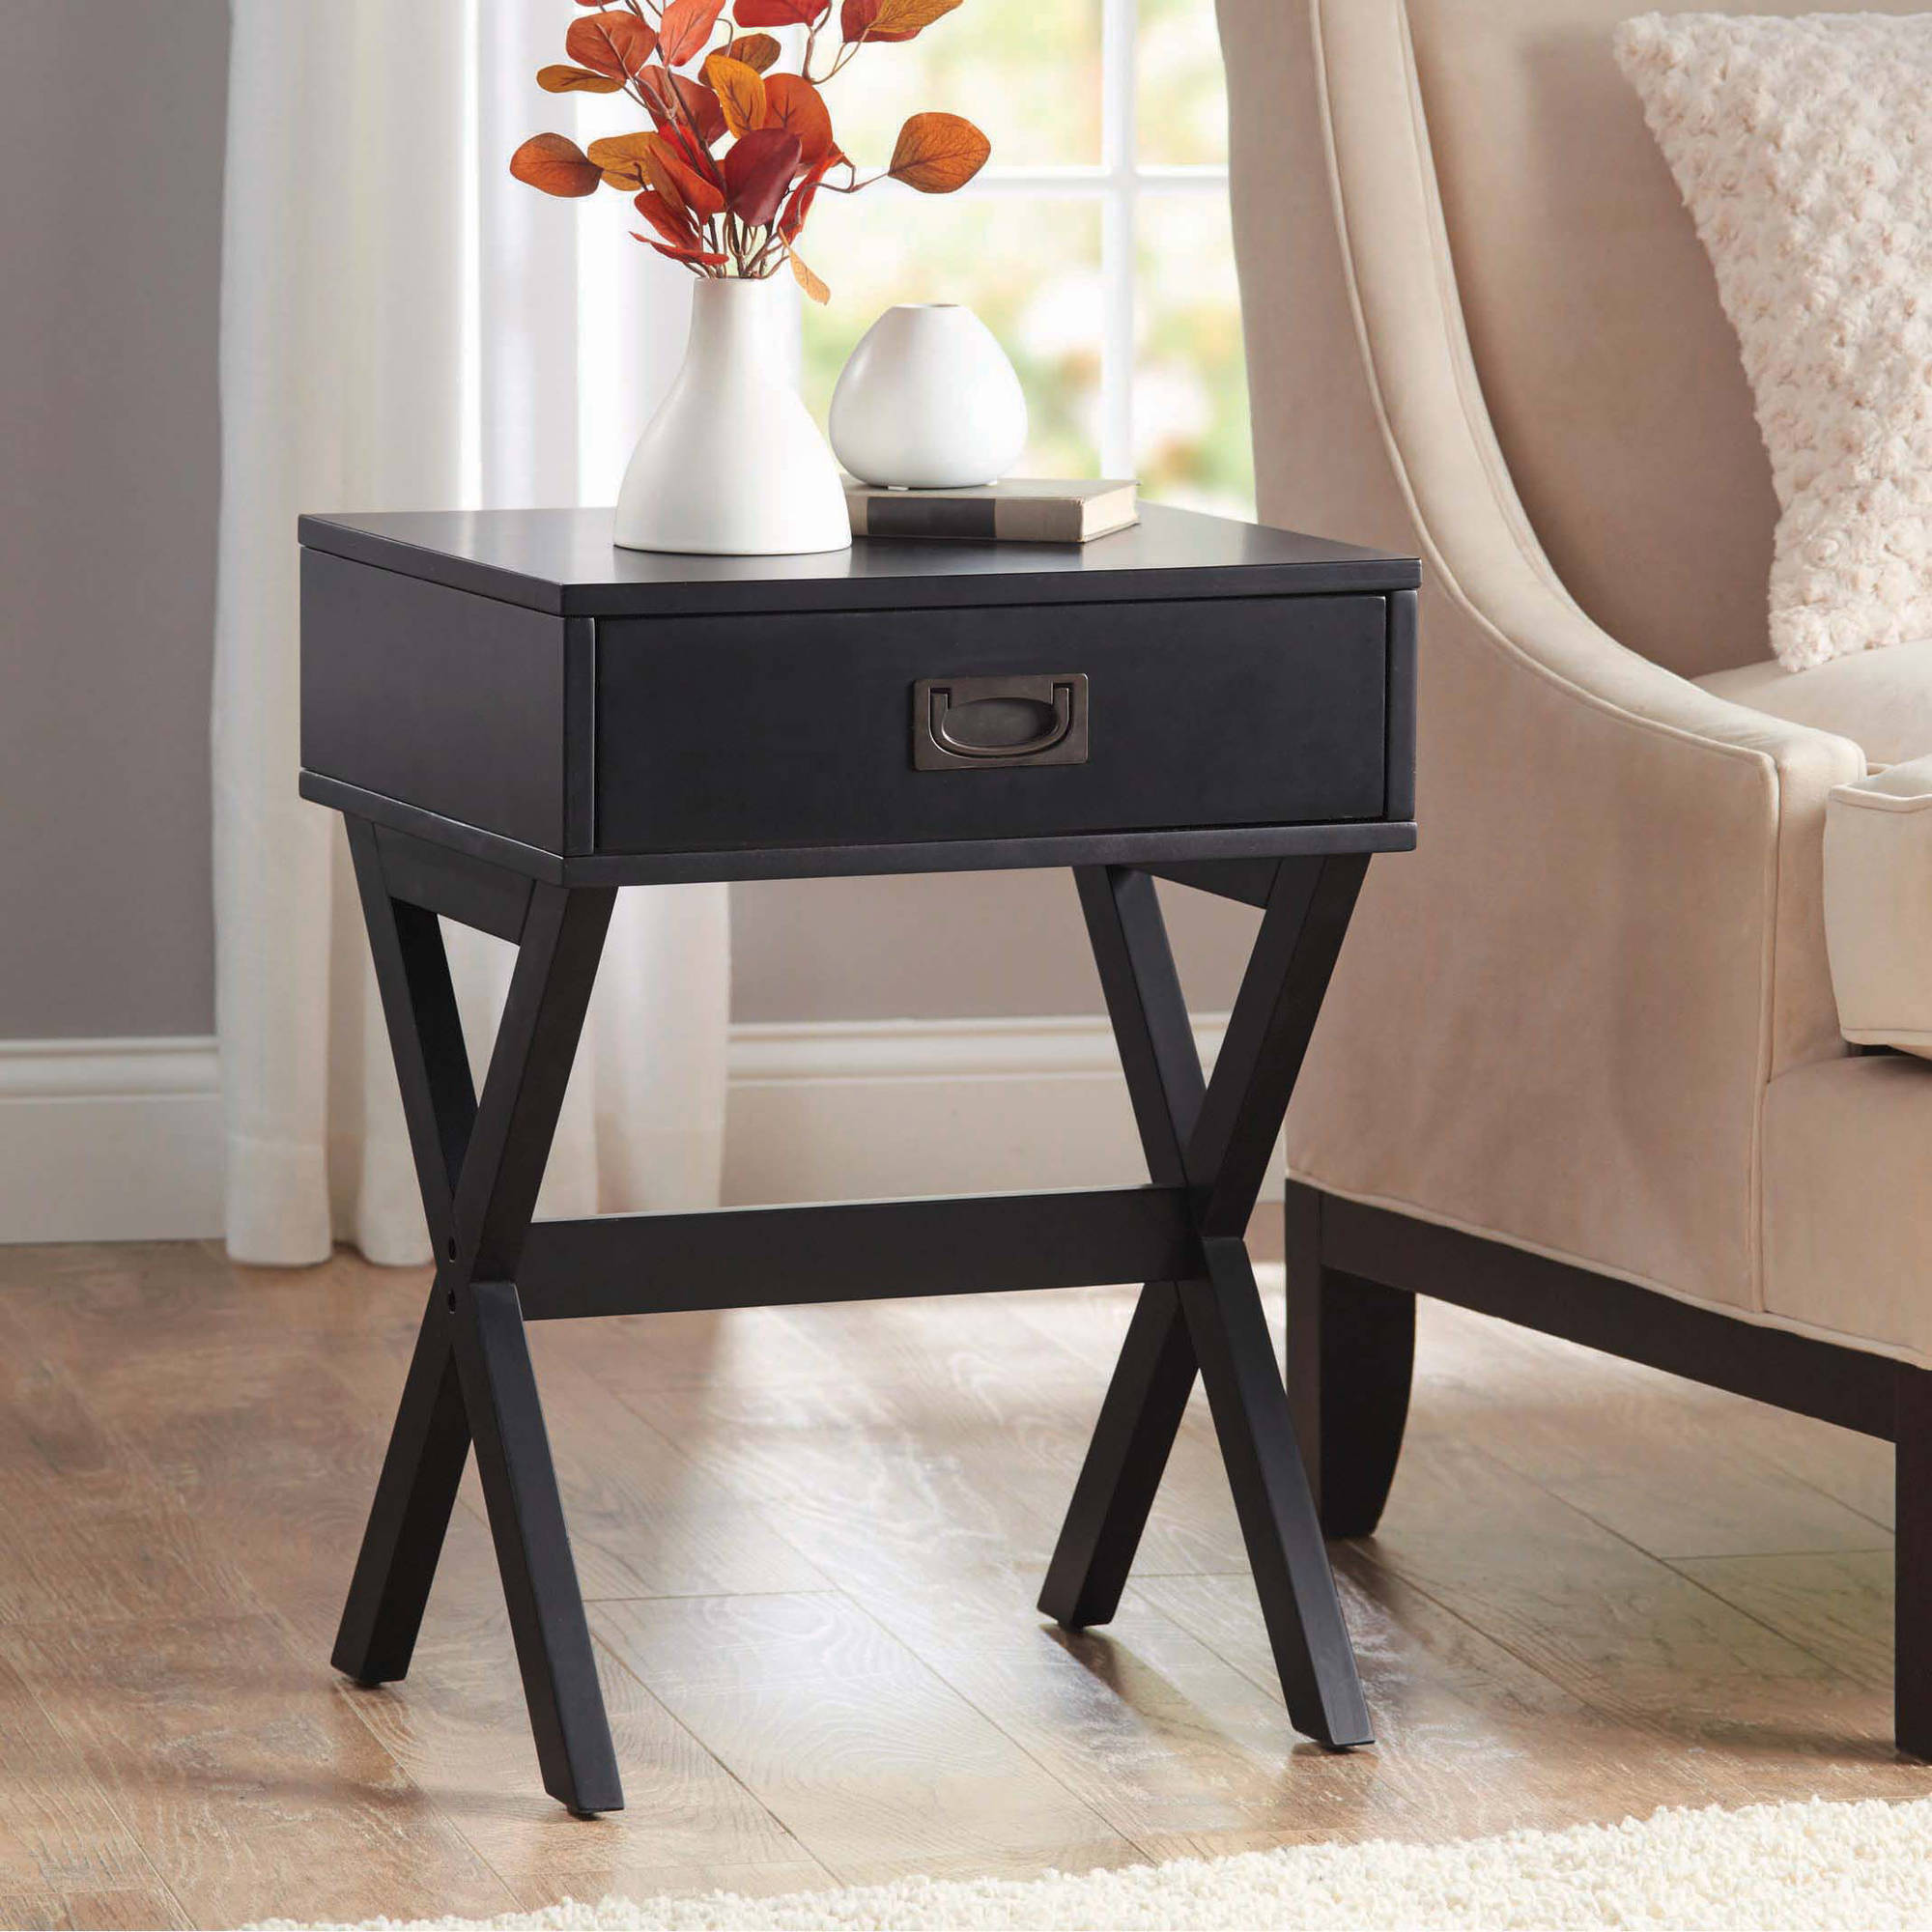 better homes gardens leg accent table with drawer multiple end one colors alan white furniture homemade side wedge cube pallet rustic unique modern matching tables who makes